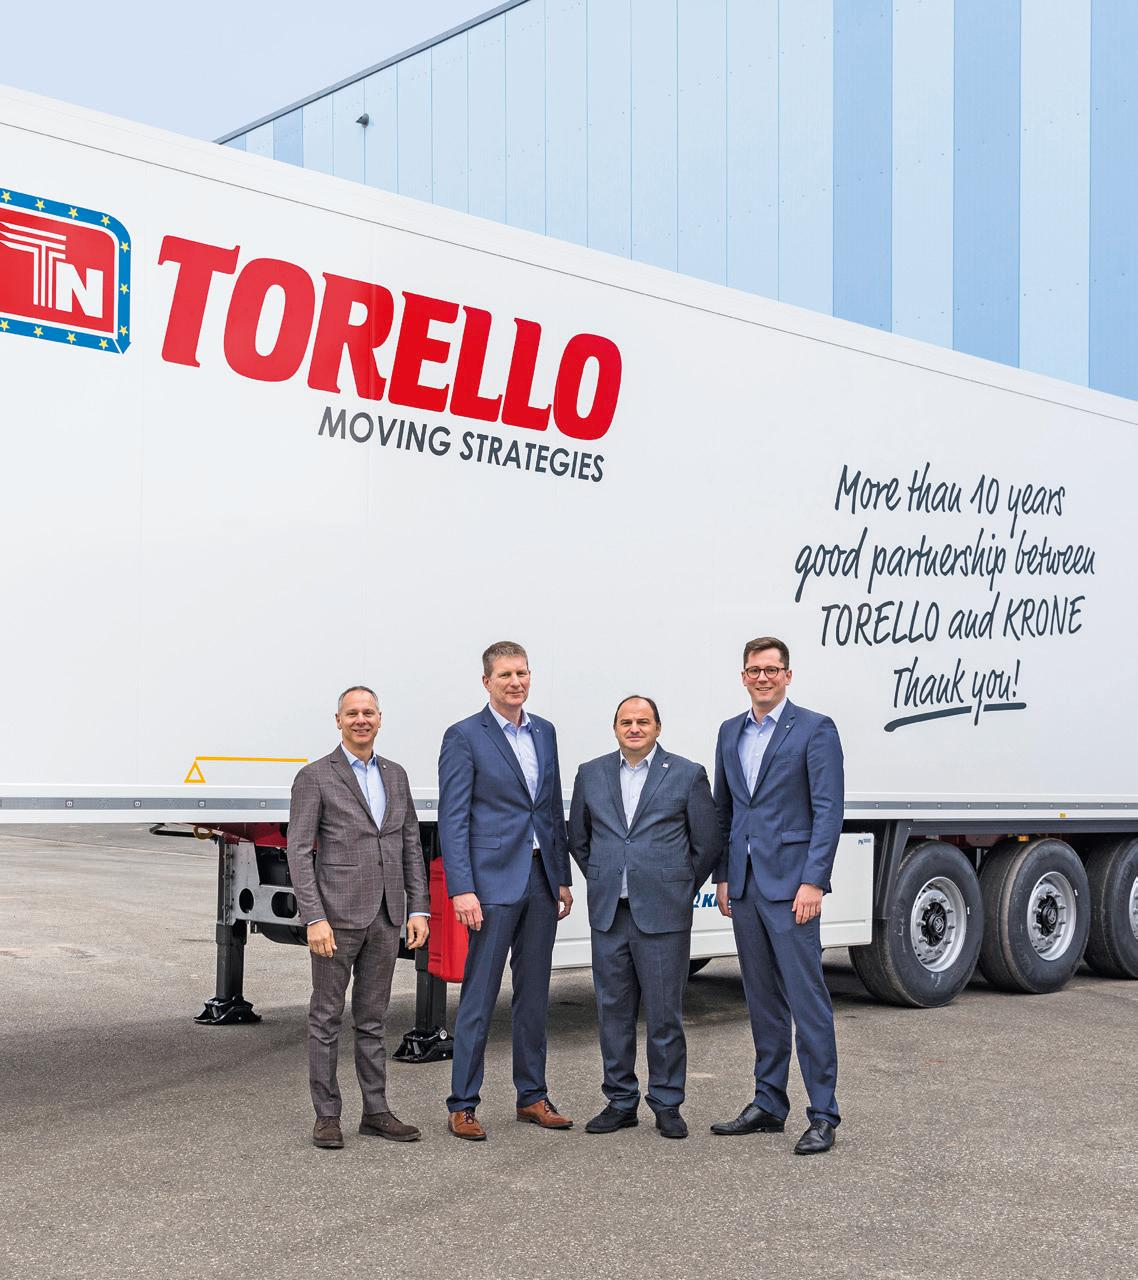 Antonio Torello, Chief Transport Officer of the Torello Group (2nd from the right) ordered 50 new Cool Liners to mark the anniversary. Stefano Savazzi, Director Sales at Realtrailer (far left), Andreas Völker, Krone Director International Sales (2nd from left) and Maximilian Hunfeld, Krone Area Sales Manager (right) welcome him to Lübtheen.